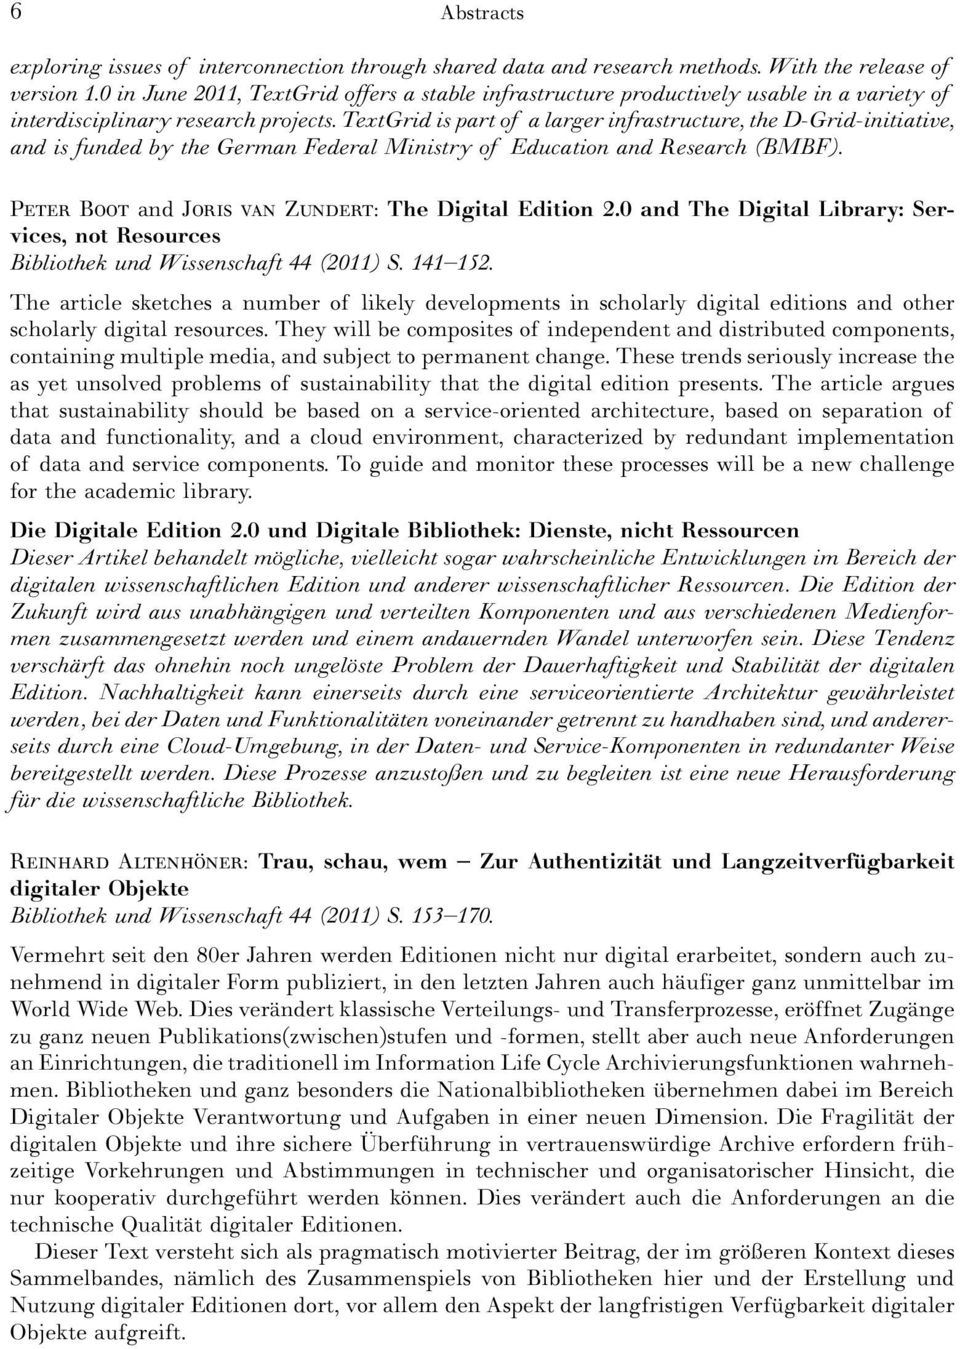 TextGrid is part of a larger infrastructure, the D-Grid-initiative, and is funded by the German Federal Ministry of Education and Research (BMBF). P B and J Z The Digital Edition 2.